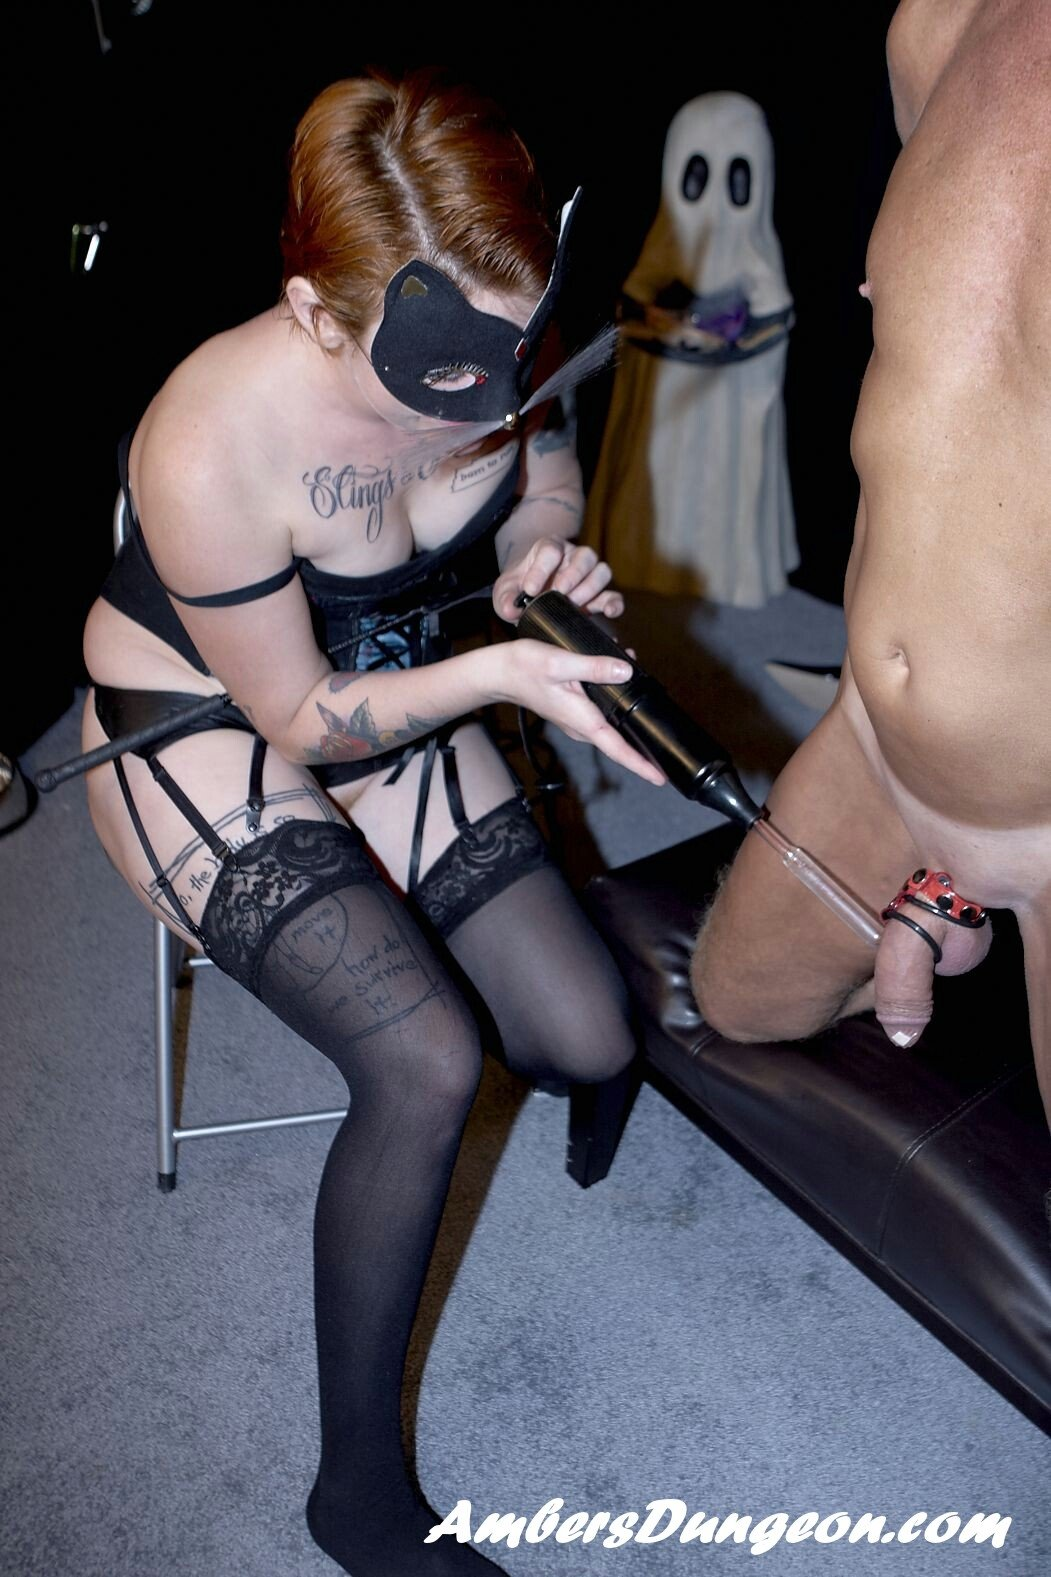 mistress whipping slave video there